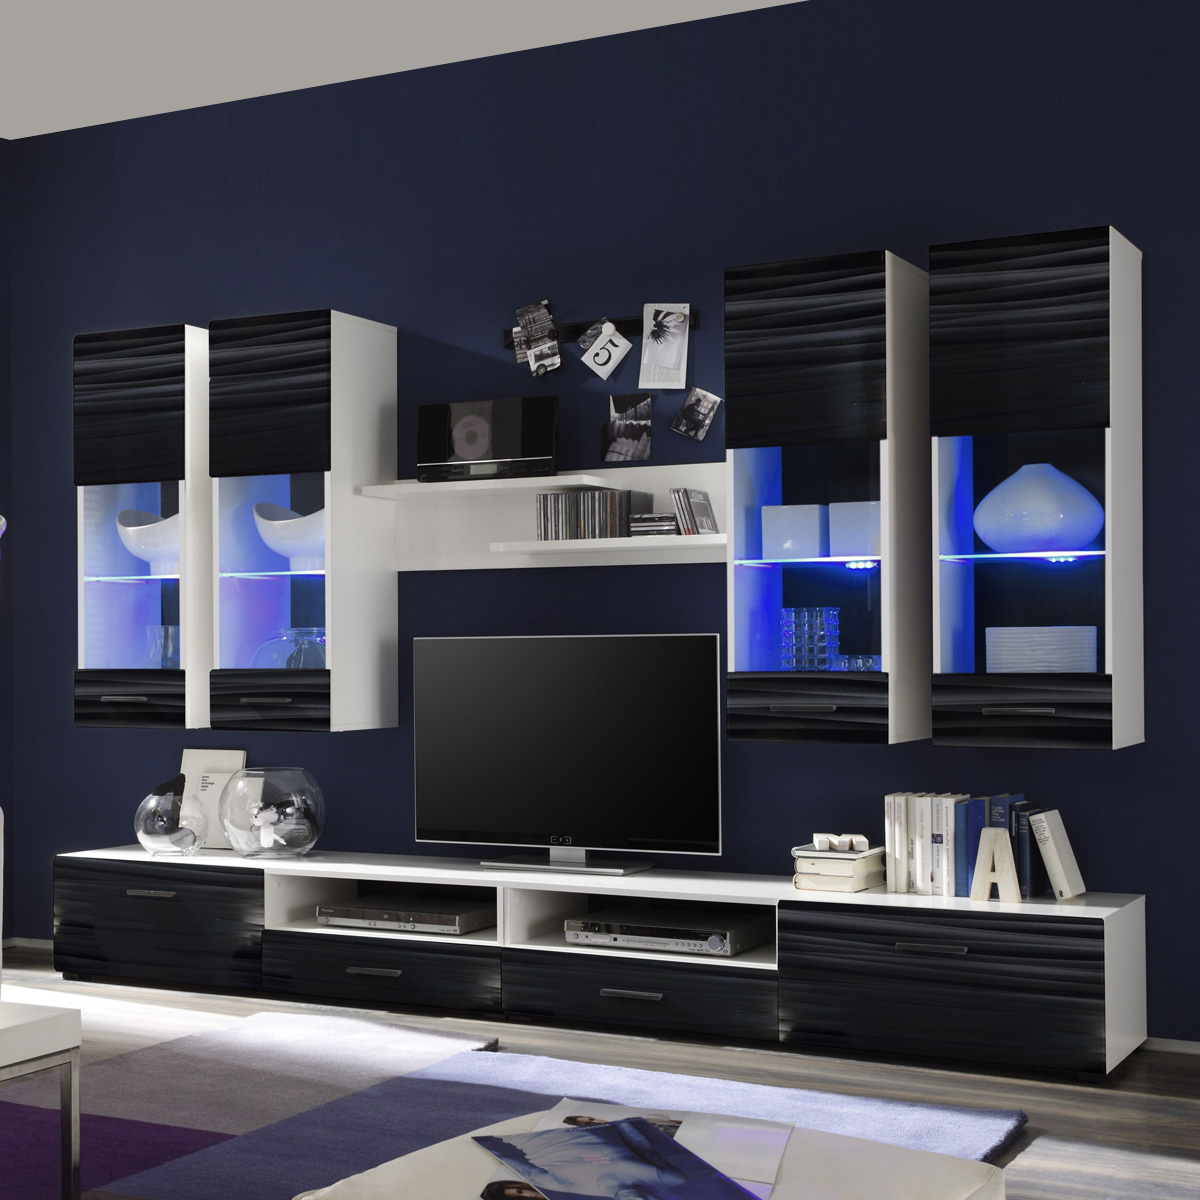 wohnwand attac 4 anbauwand wohnzimmer sahara schwarz 3d folie wei mit led ebay. Black Bedroom Furniture Sets. Home Design Ideas